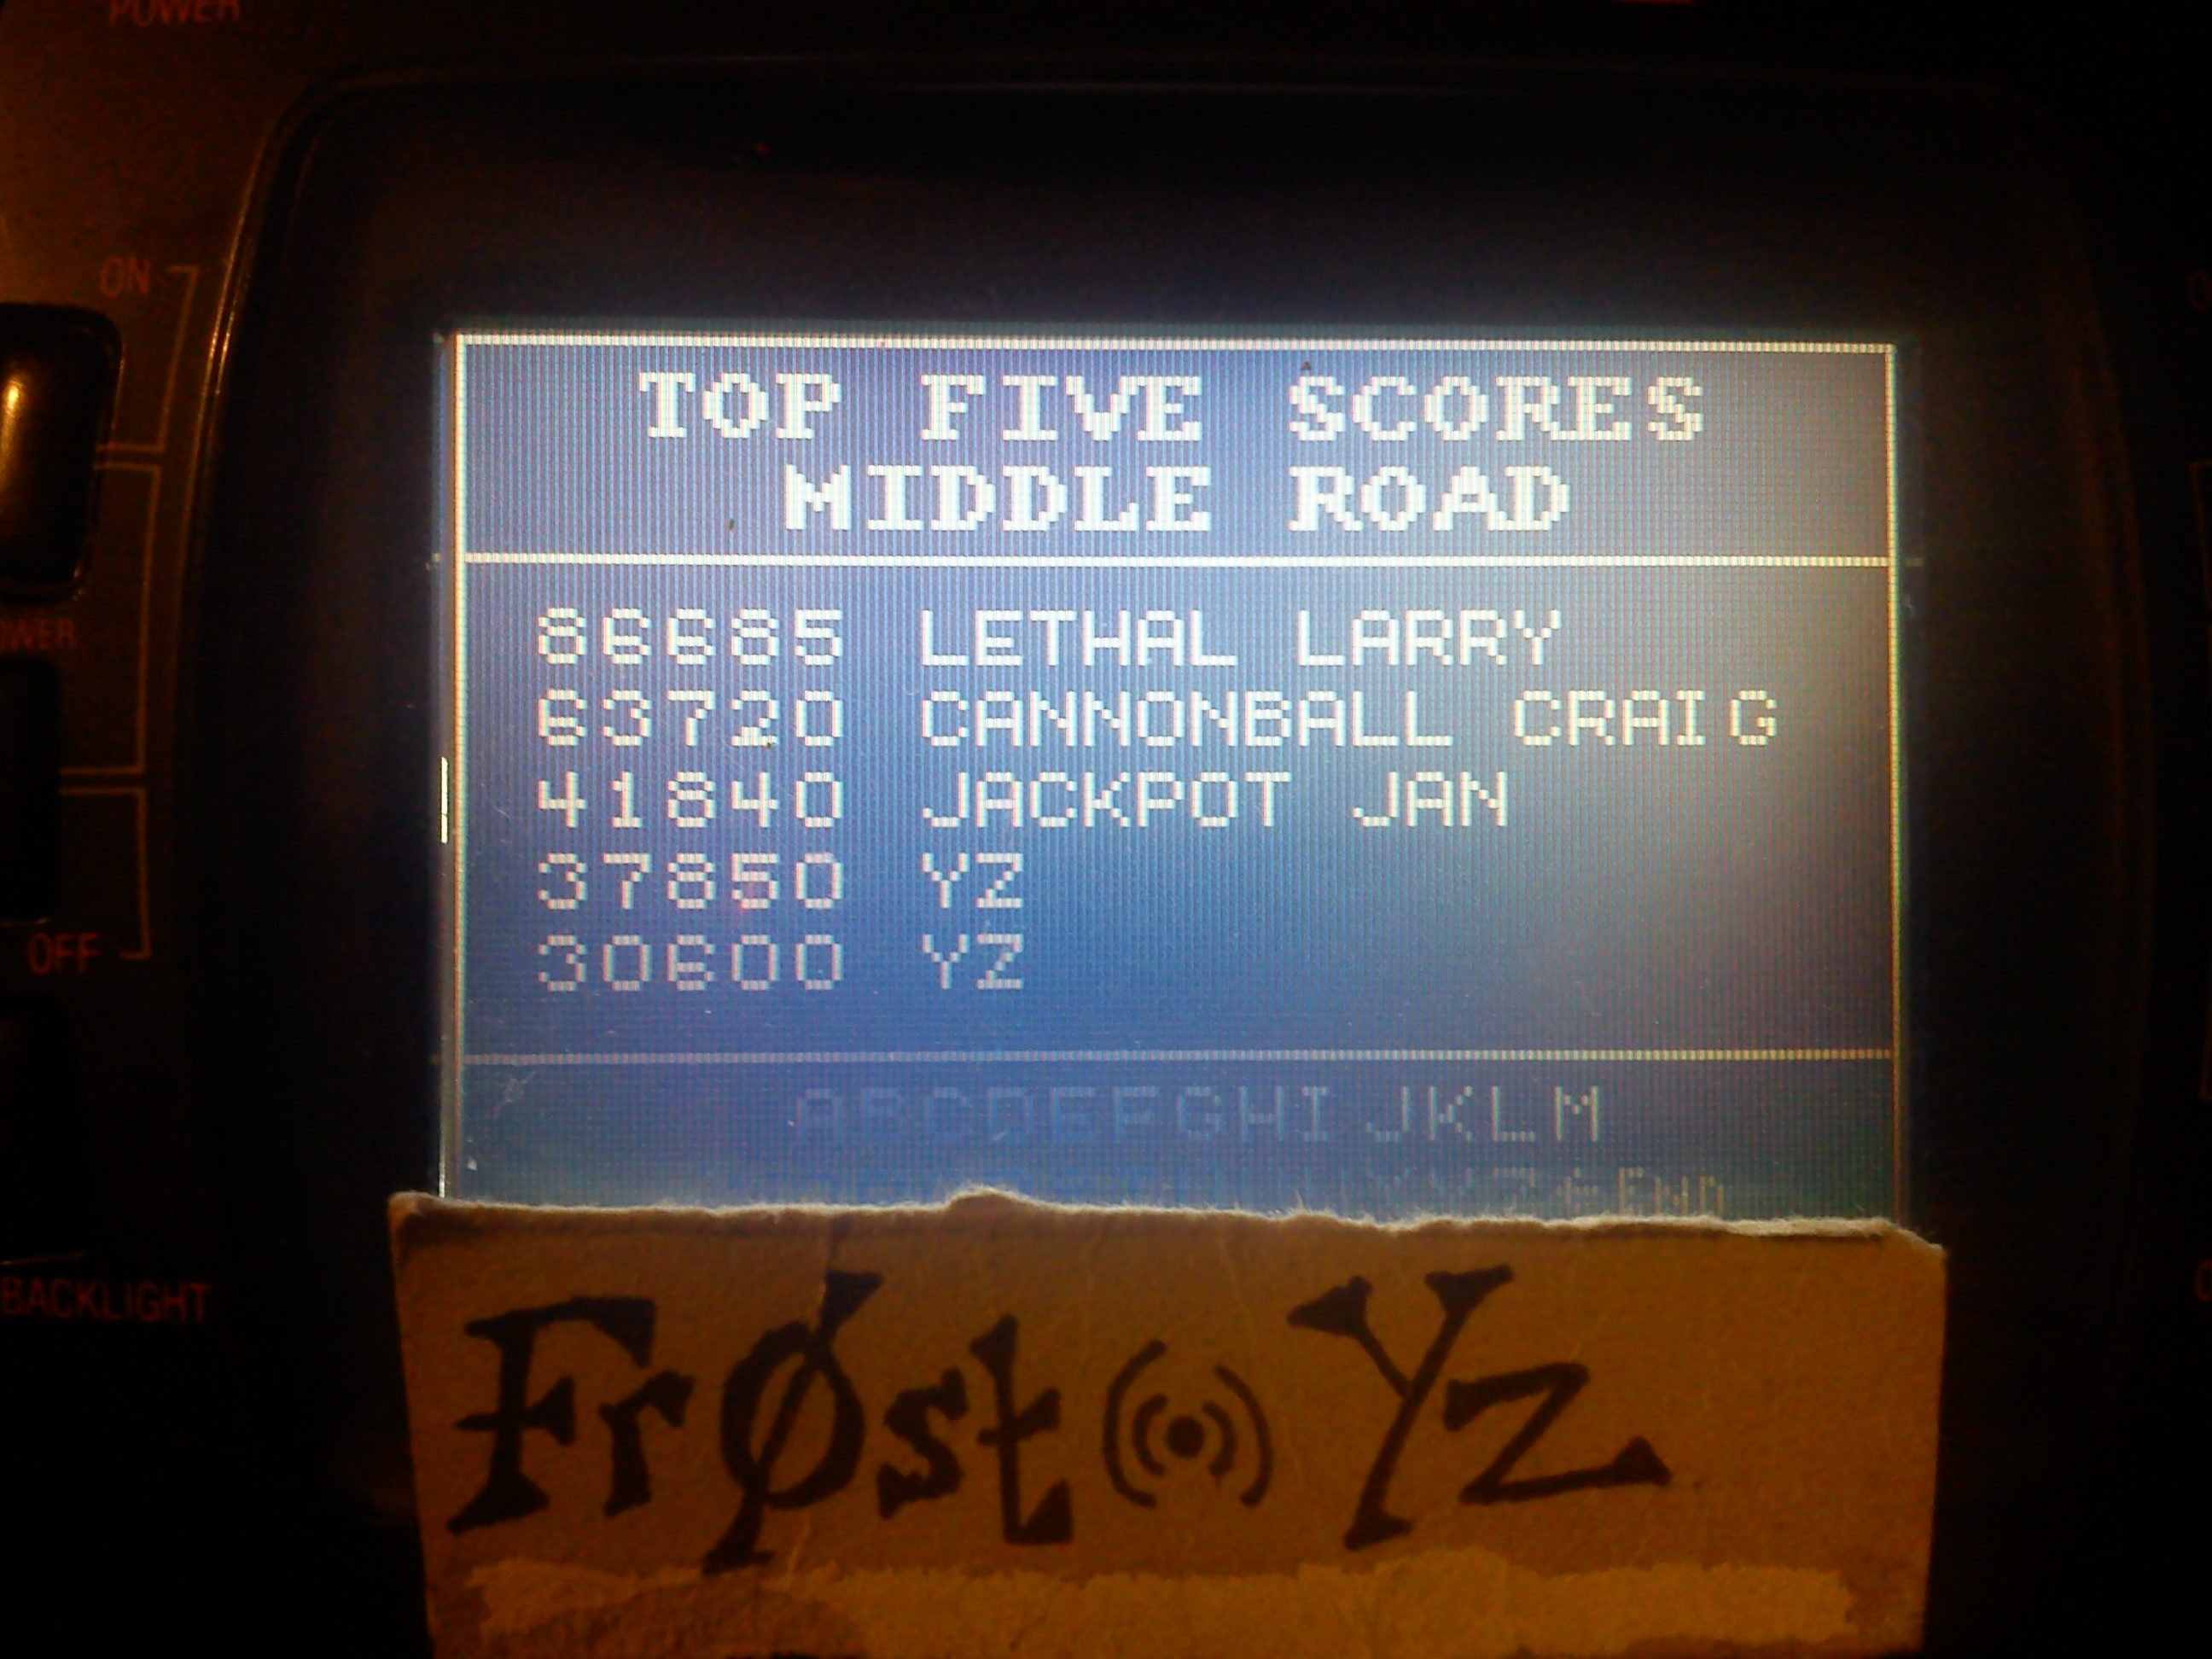 Fr0st: Paperboy: Middle Road (Atari Lynx) 37,850 points on 2014-11-04 13:58:10